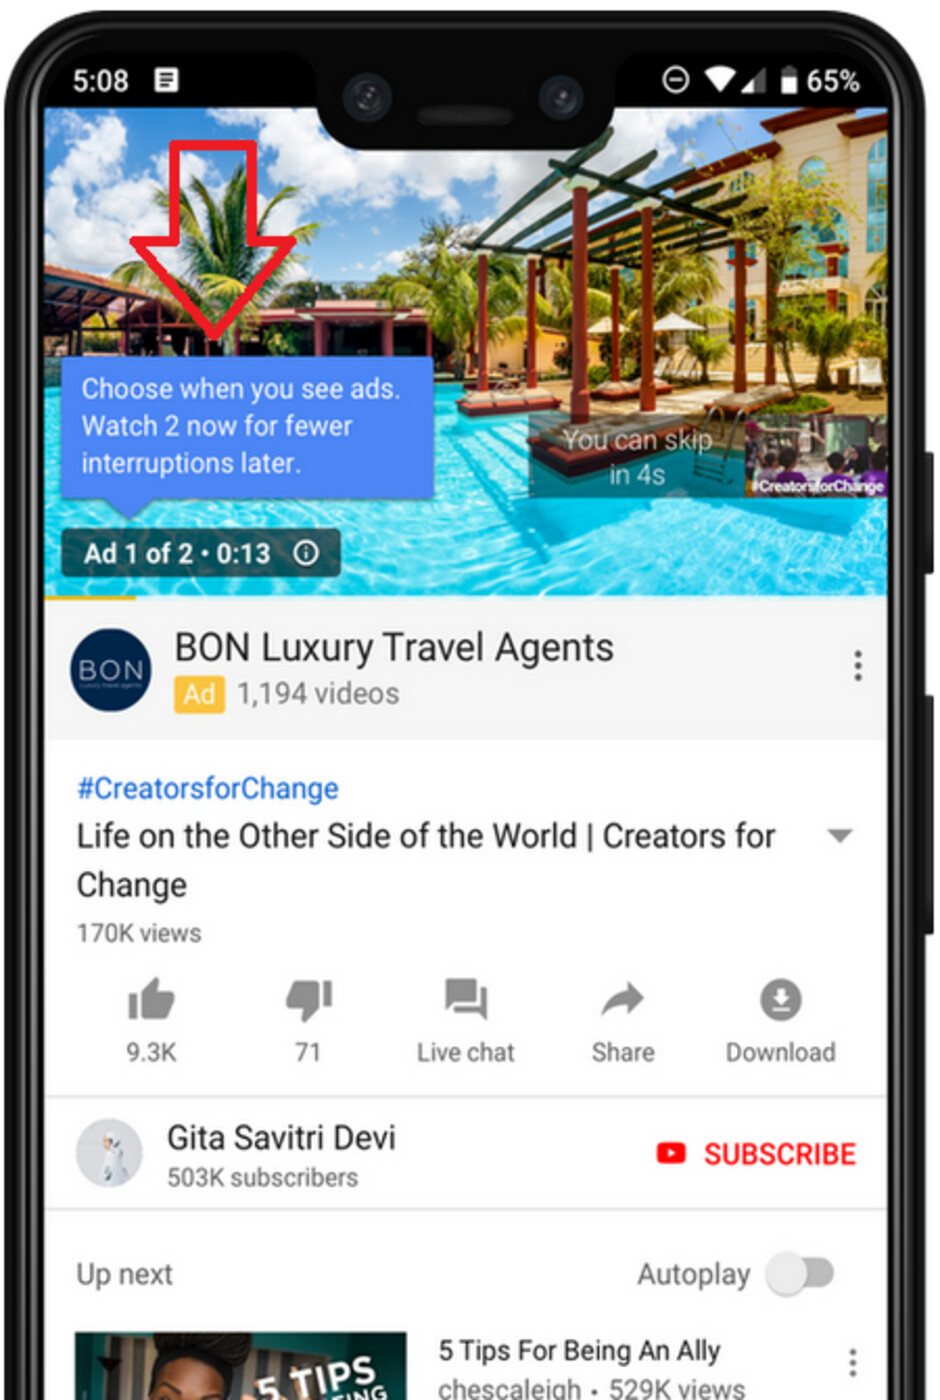 Example of an ad pod that gives a YouTube viewer the option to see two back to back ads now, or face more interruptions later - YouTube tests back-to-back skippable ads that reduce interruptions later in the viewing session